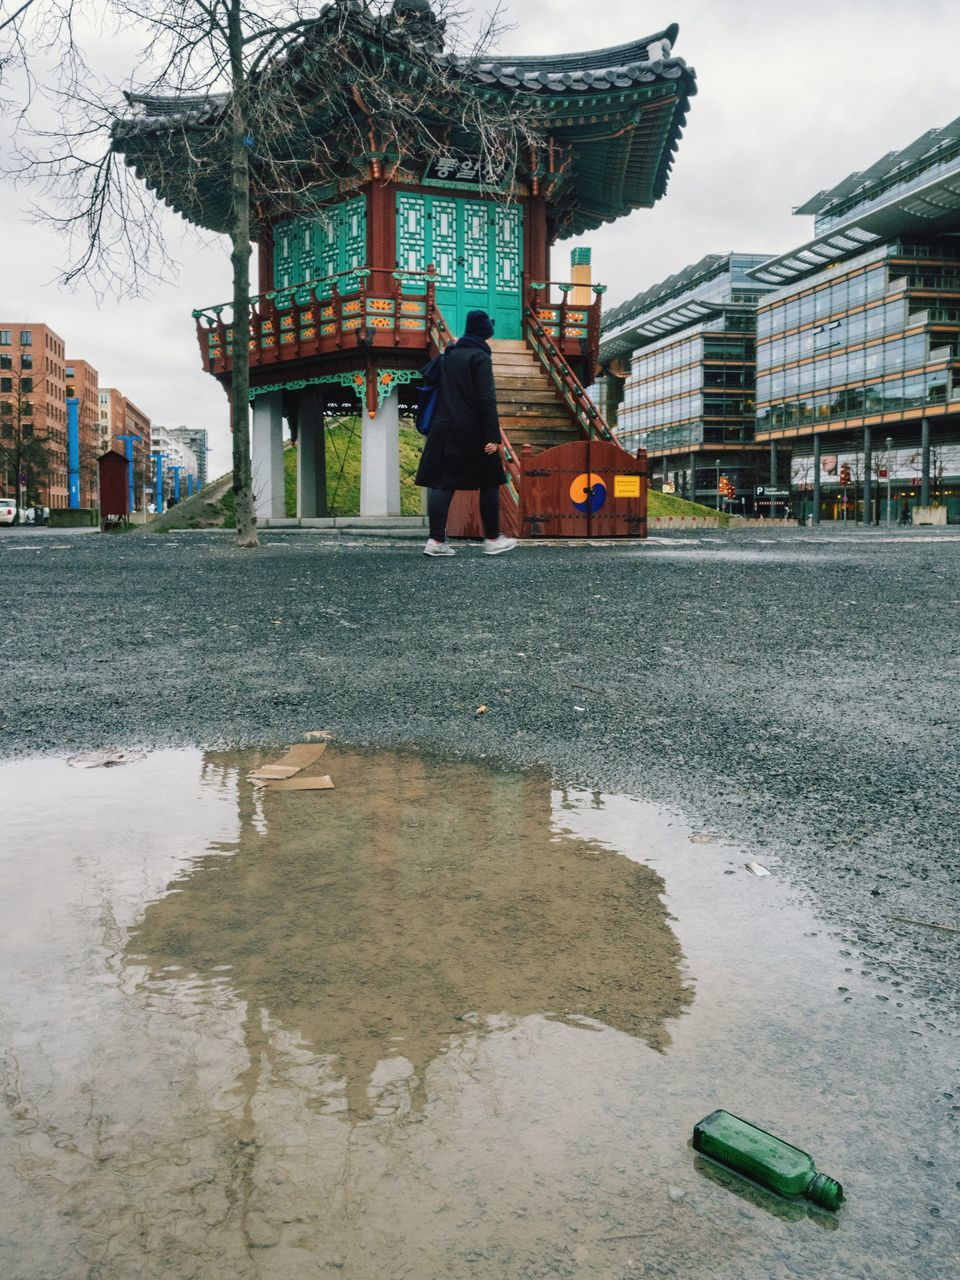 architecture, built structure, building exterior, real people, water, walking, men, outdoors, one person, day, standing, lifestyles, full length, puddle, sky, city, people